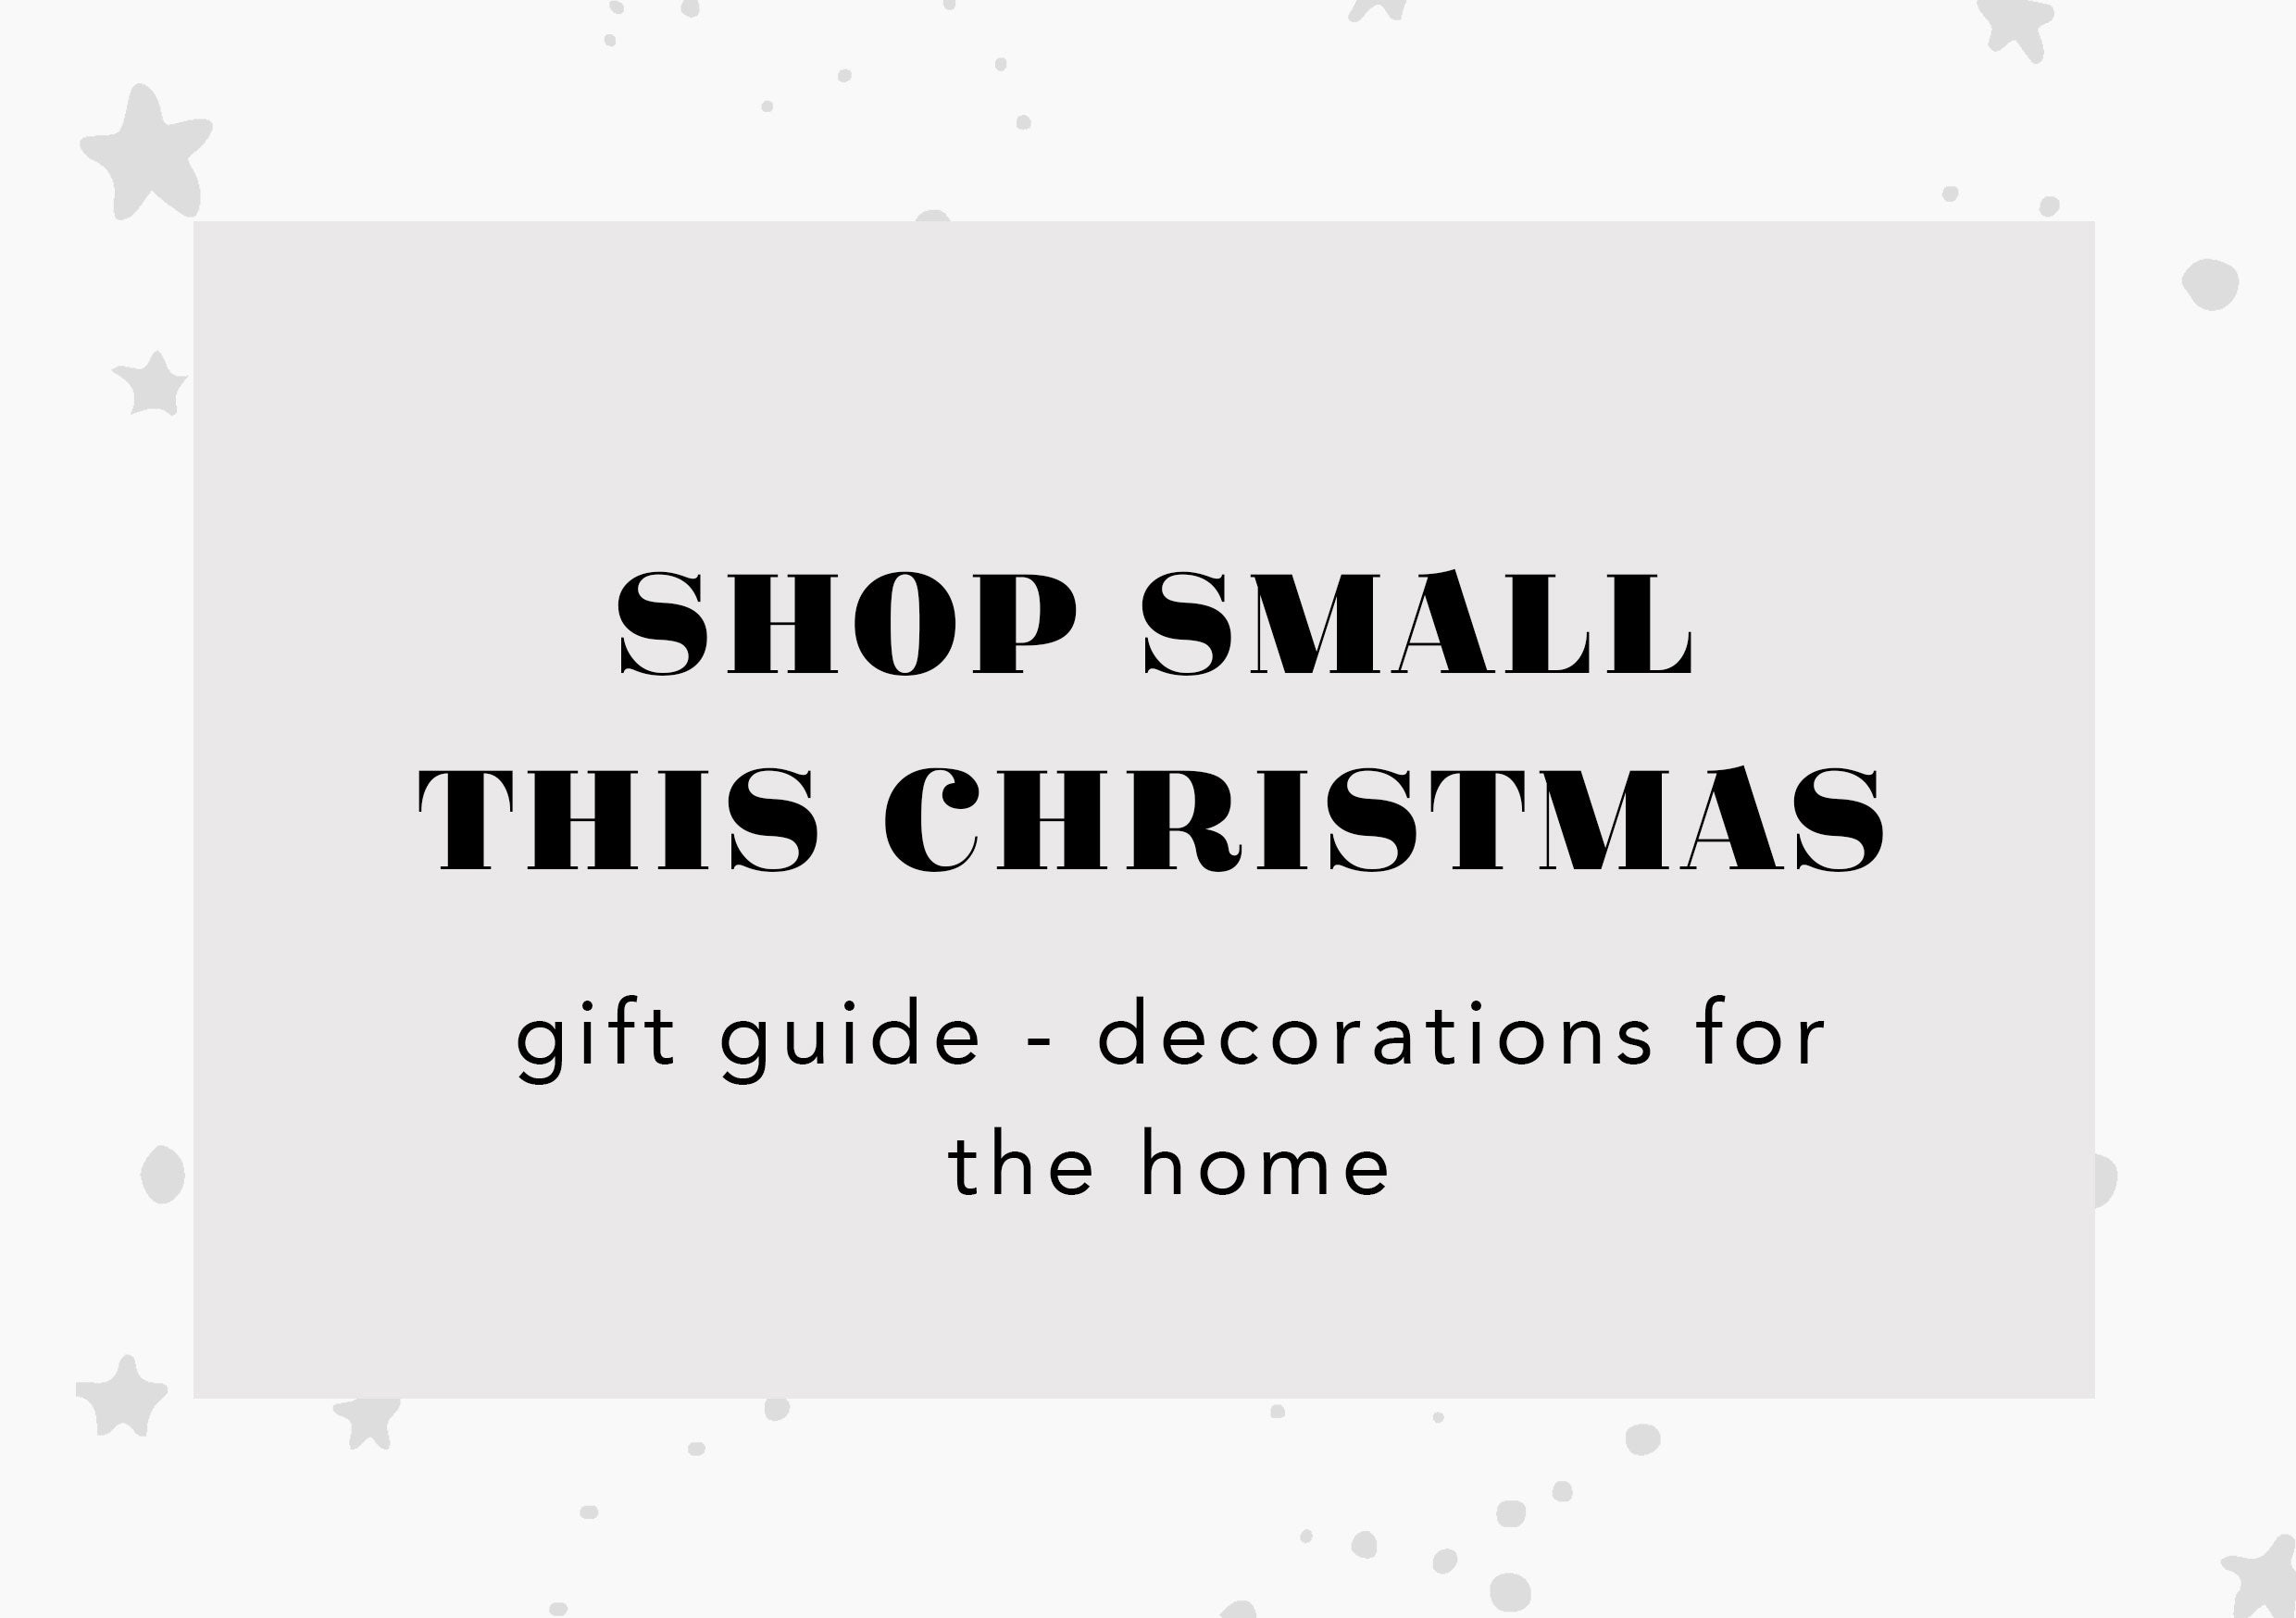 shop small this christmas - decorations for the home